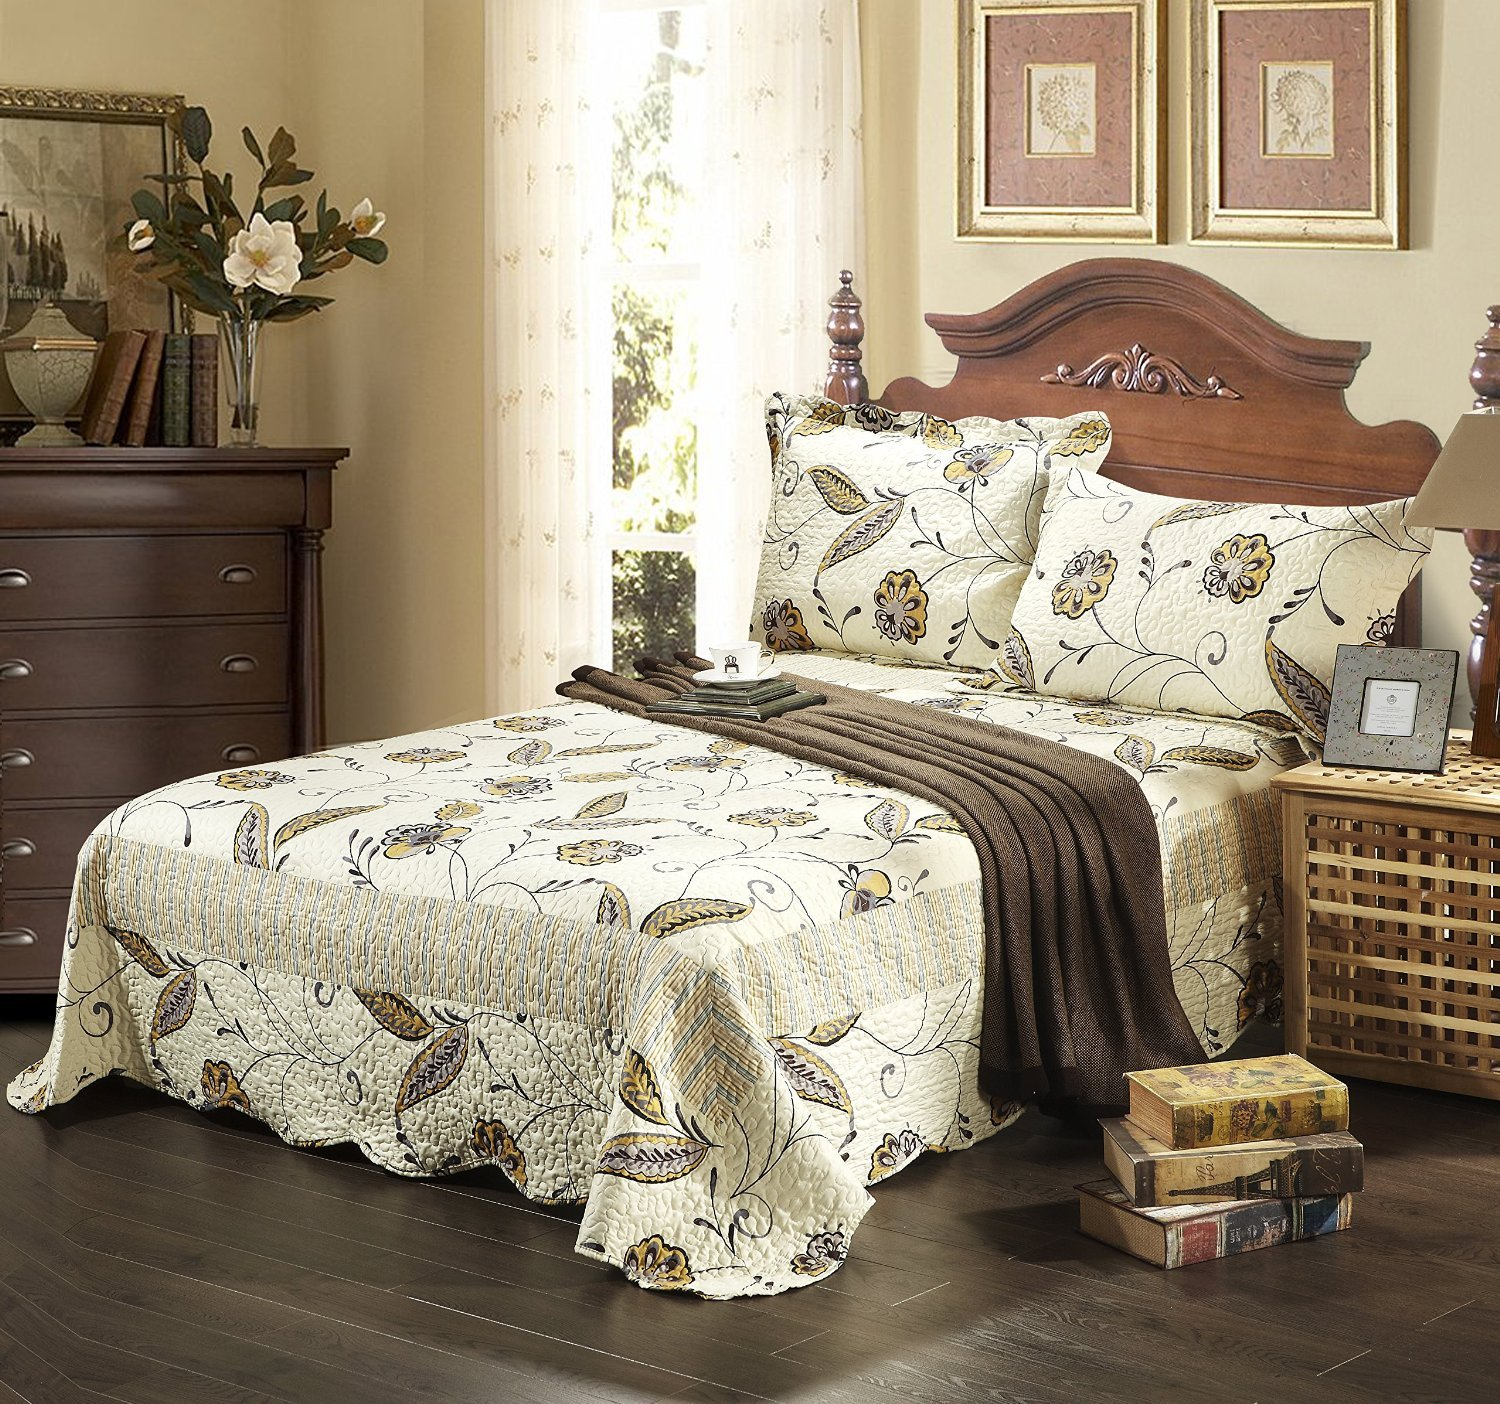 Tache Home Fashion SD2238-Single Seasons Eve Lightweight Brown Leaves Quilted Bedspread Quilt Set, Brown, Twin